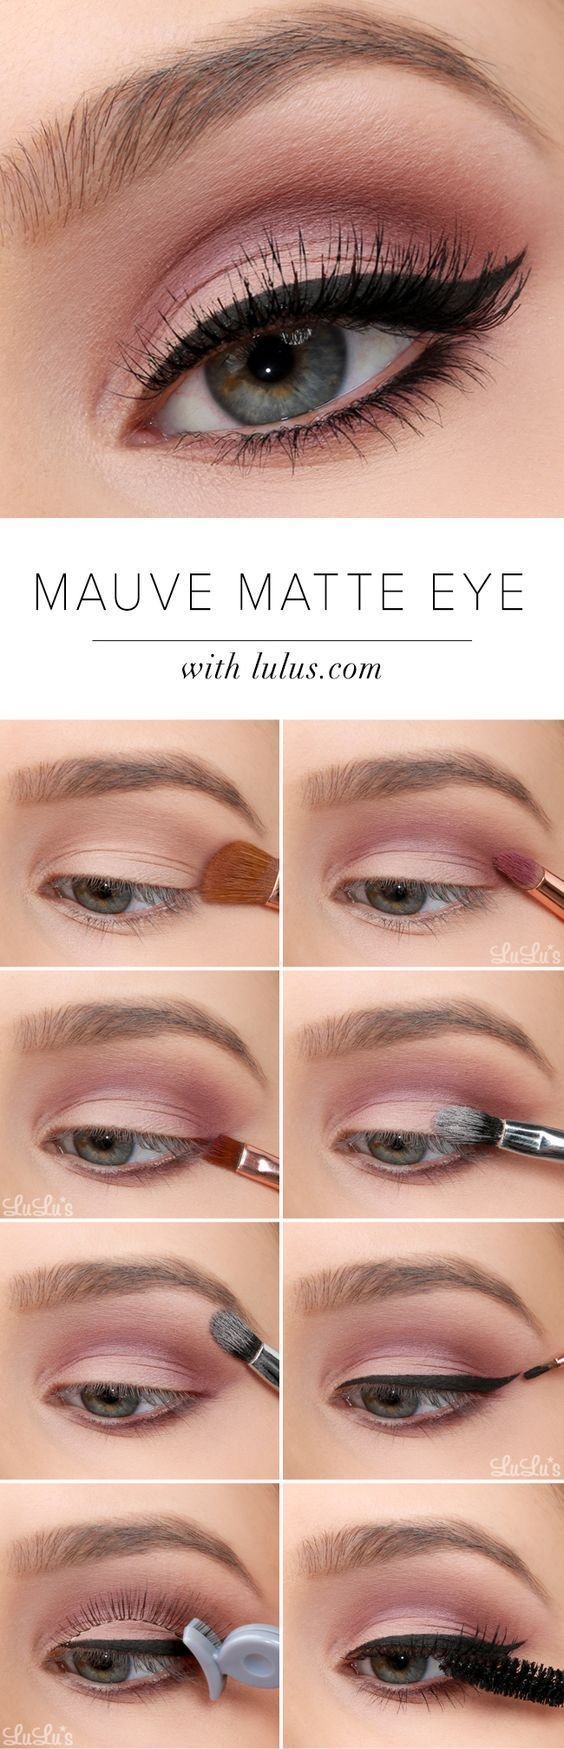 Makeup Ideas:  www.lulus.com/ 2015. Unauthorized use and/or duplication of this material wi http://amzn.to/2tGTF0k